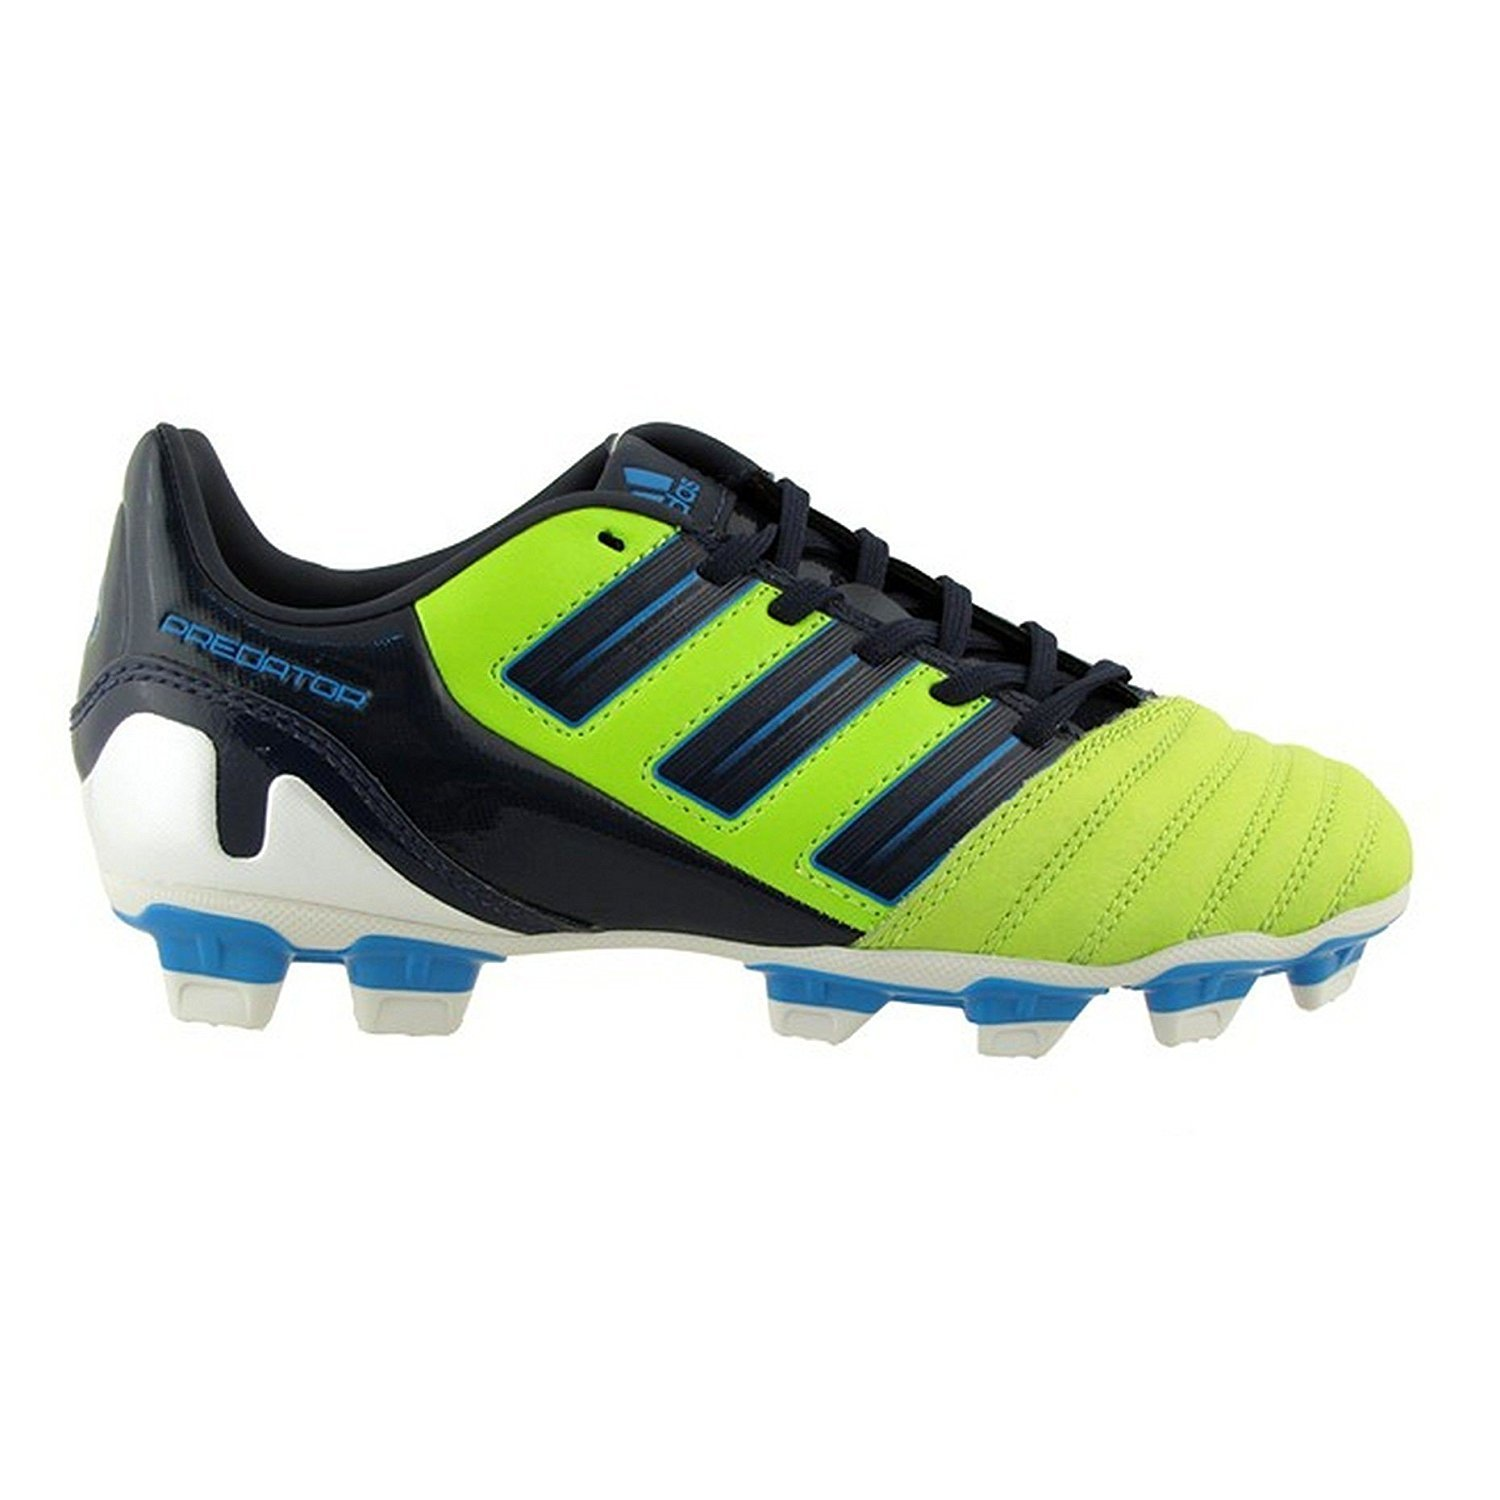 d861b8dfa9f7 Get Quotations · adidas PREDATOR JUNIOR Absolado TRX FG Soccer Cleats  (Slime Drkindigo Preshablu)